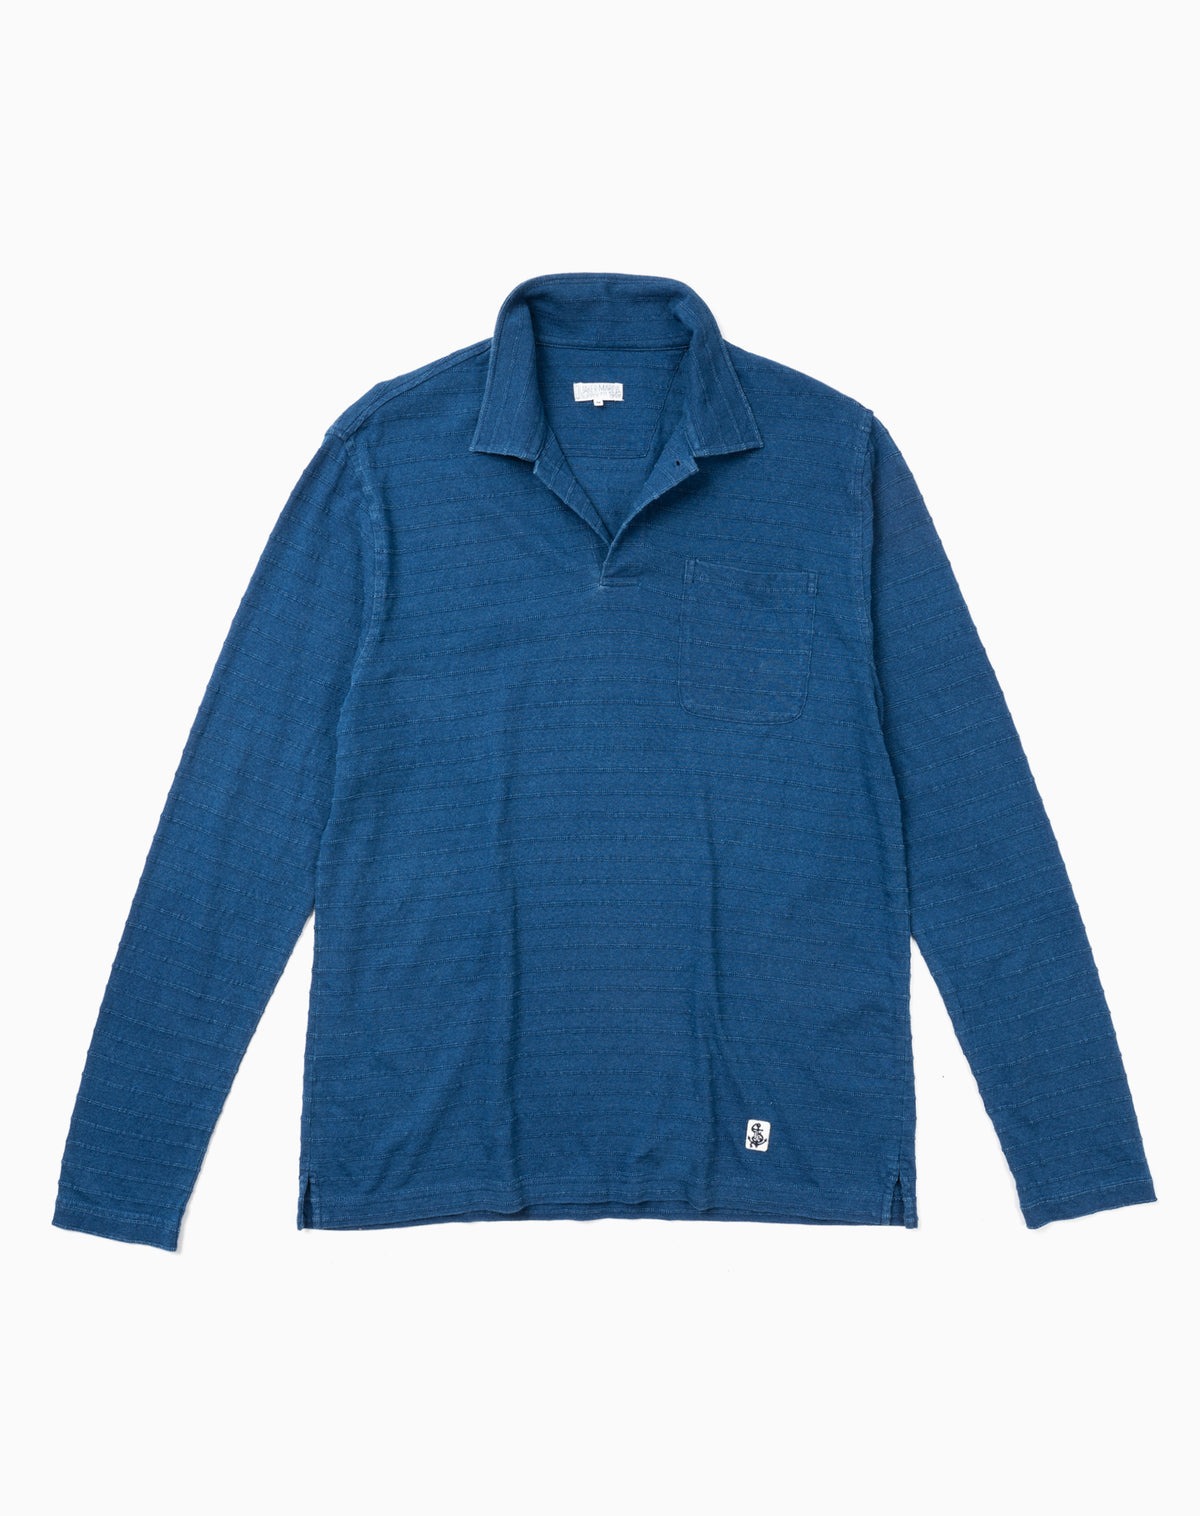 Long Sleeve Indigo Polo in Tonal Jacquard Stripe